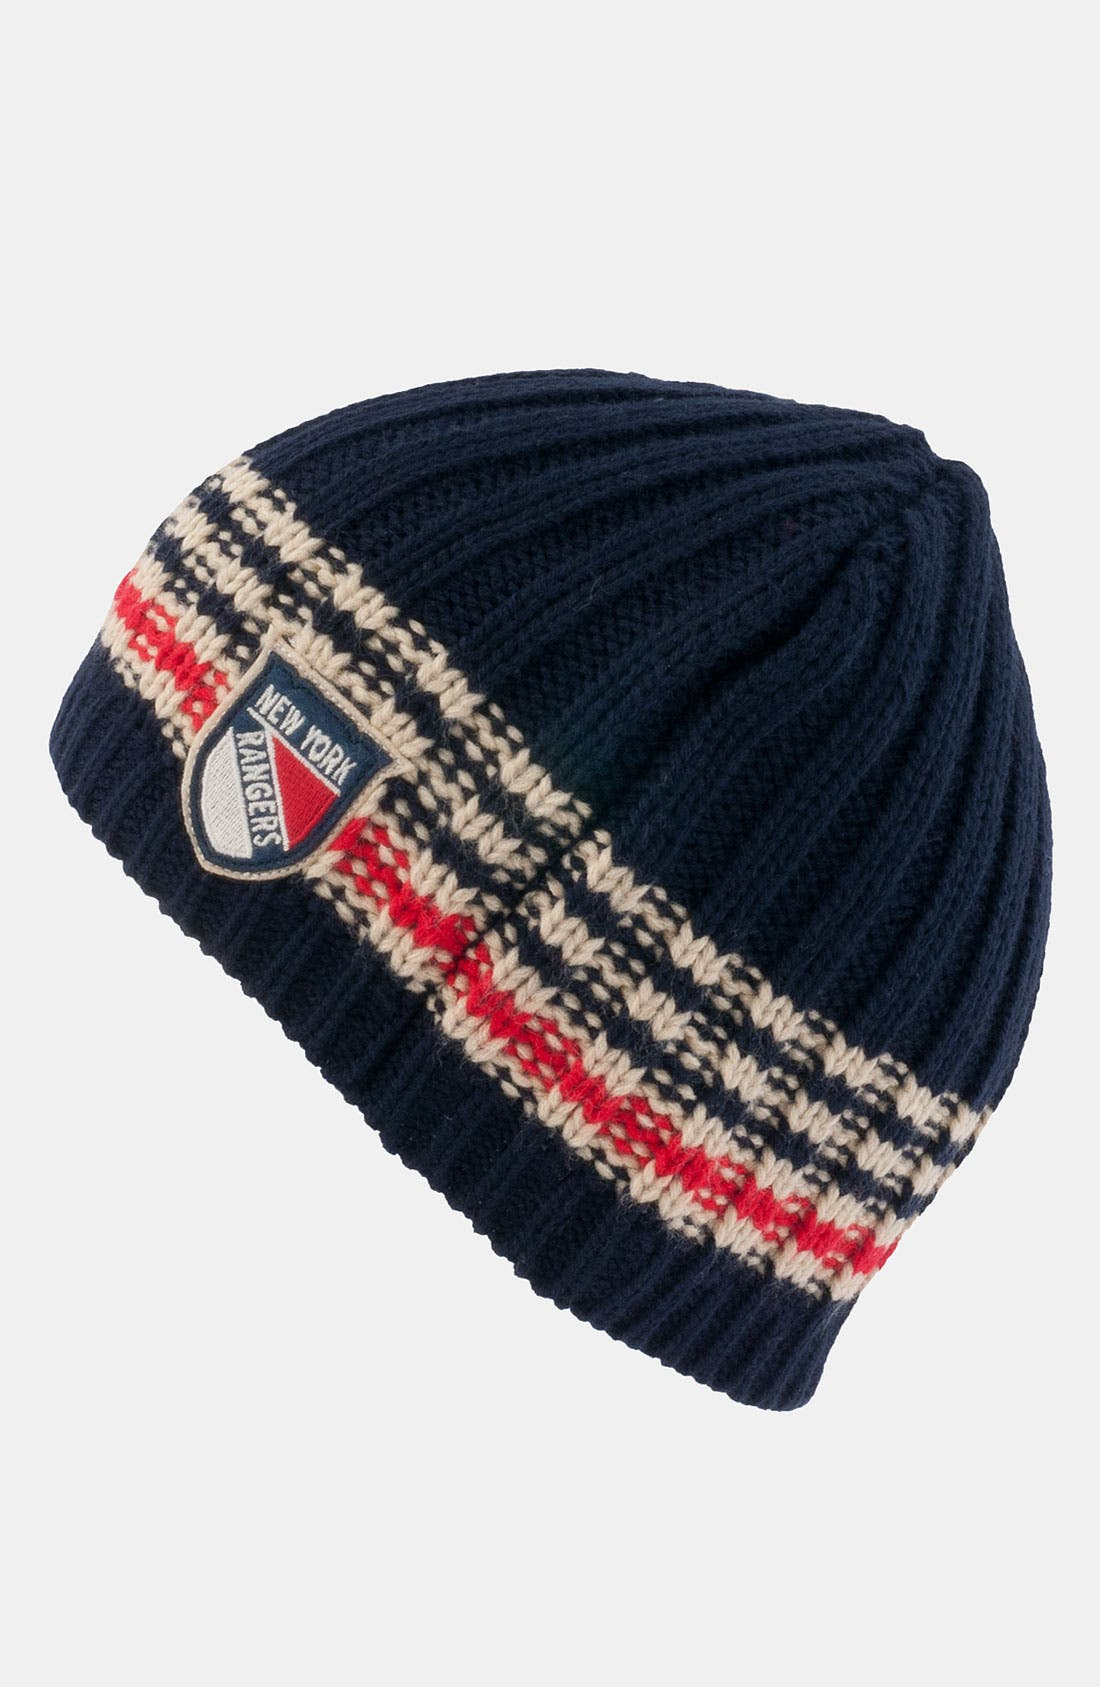 Alternate Image 1 Selected - American Needle 'New York Rangers - Targhee' Knit Hat